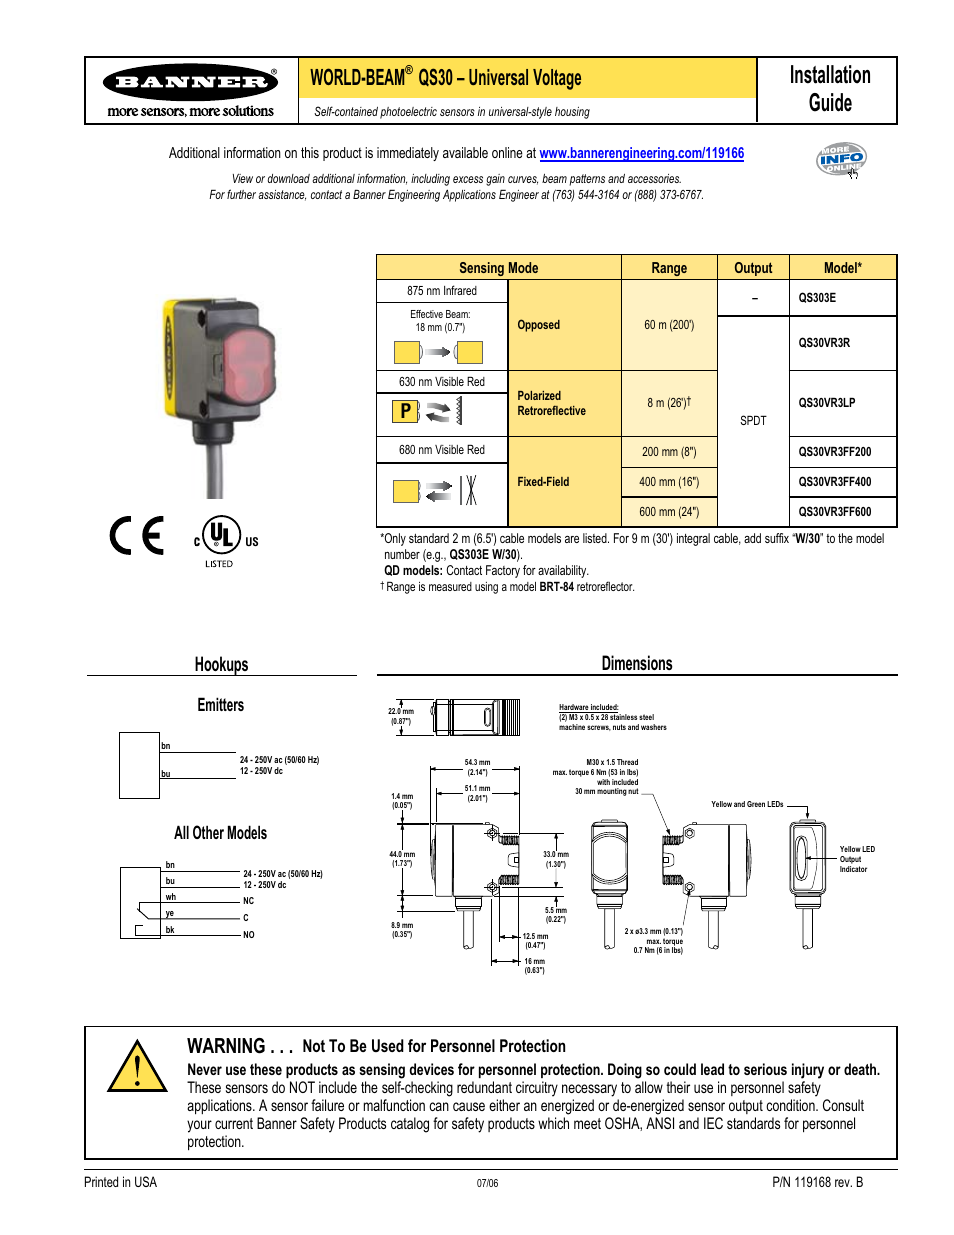 Banner WORLD-BEAM QS30 Series User Manual | 2 pages on